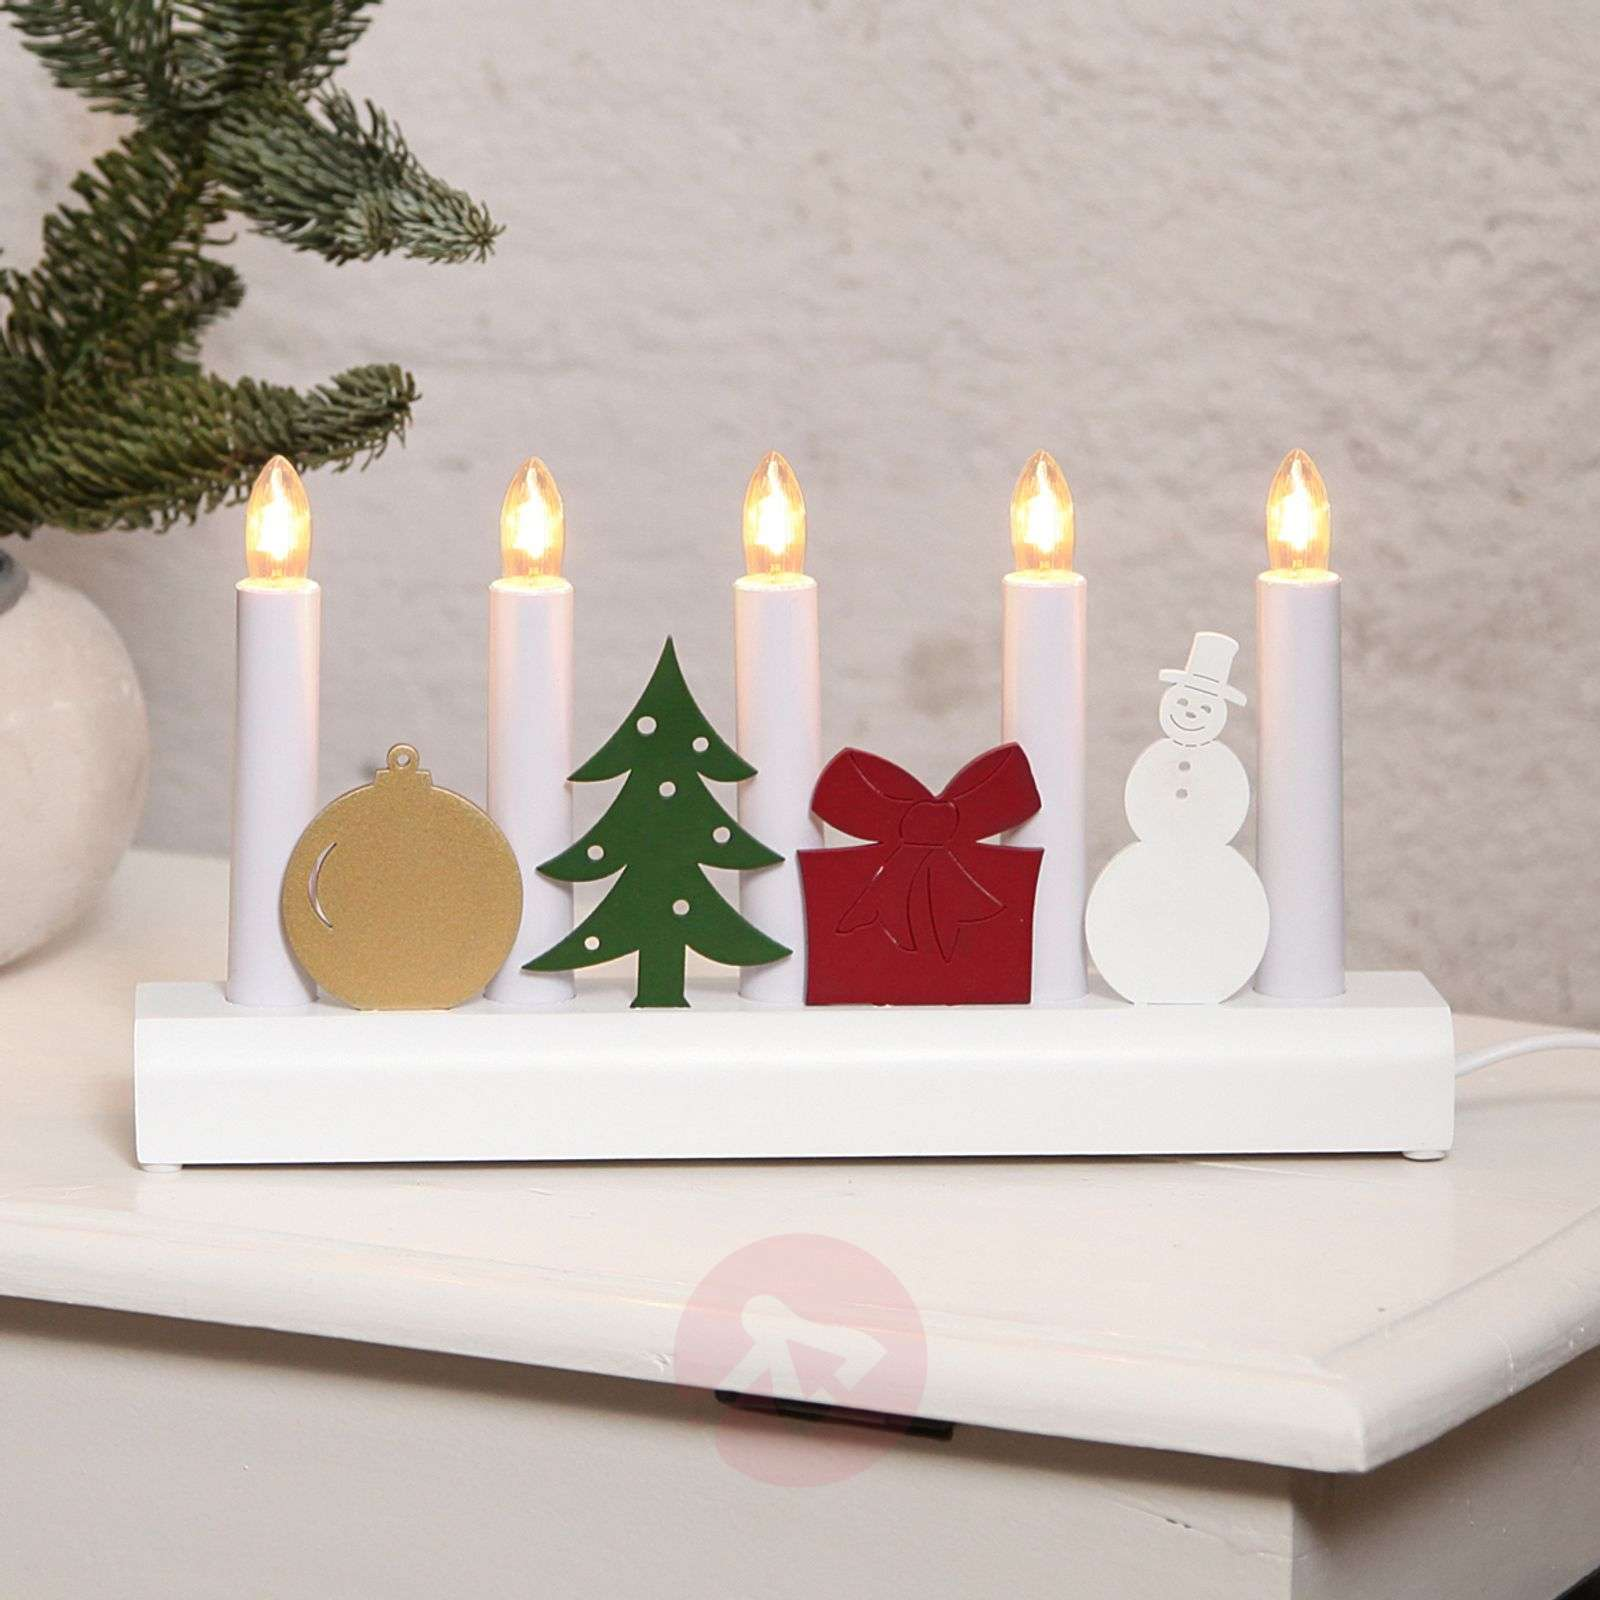 Colourful candleholder Julia with Christmas motifs-1522888-01